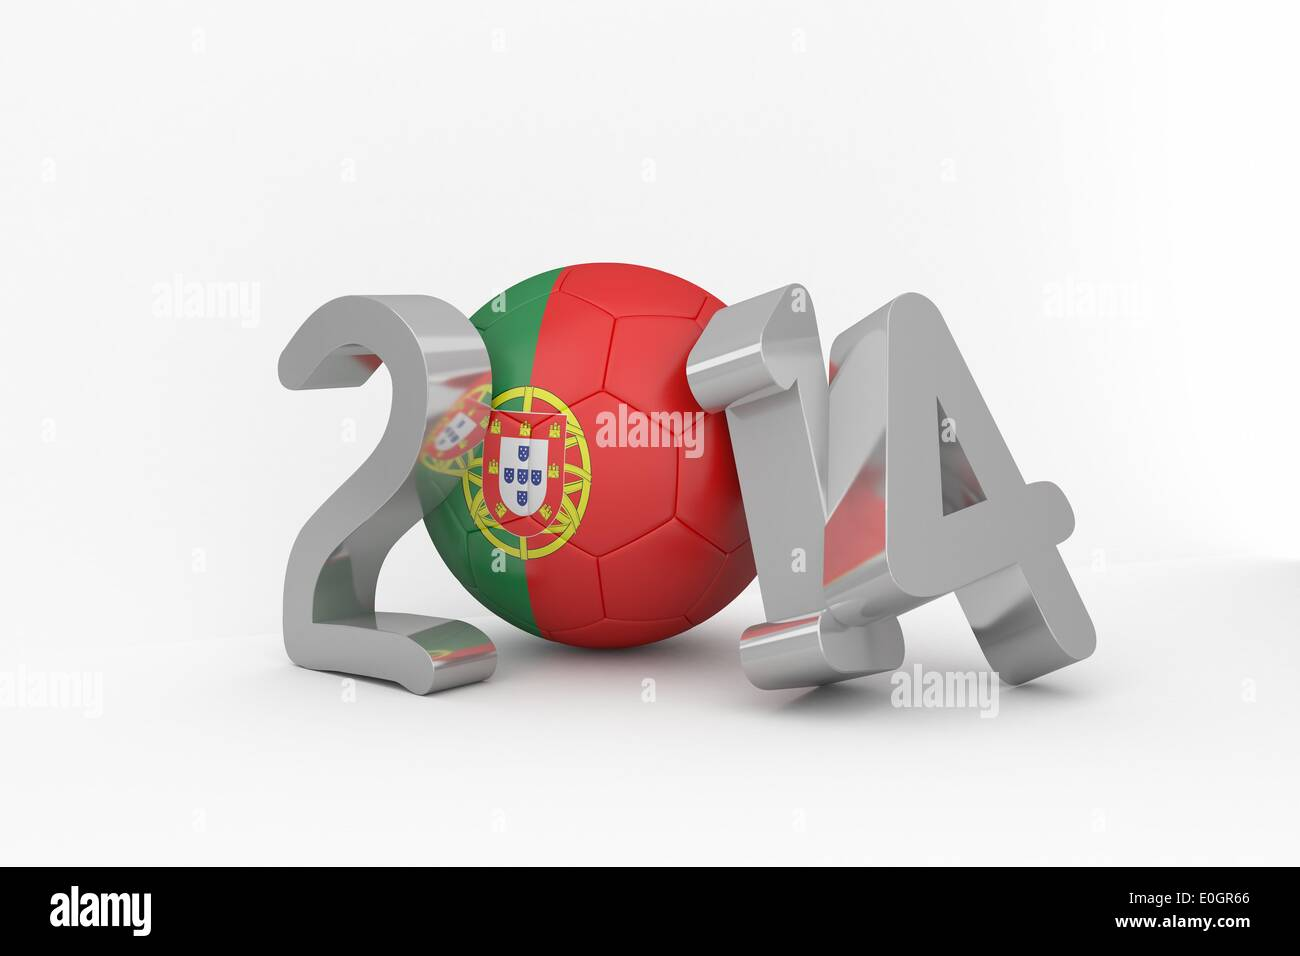 Portugal world cup 2014 - Stock Image